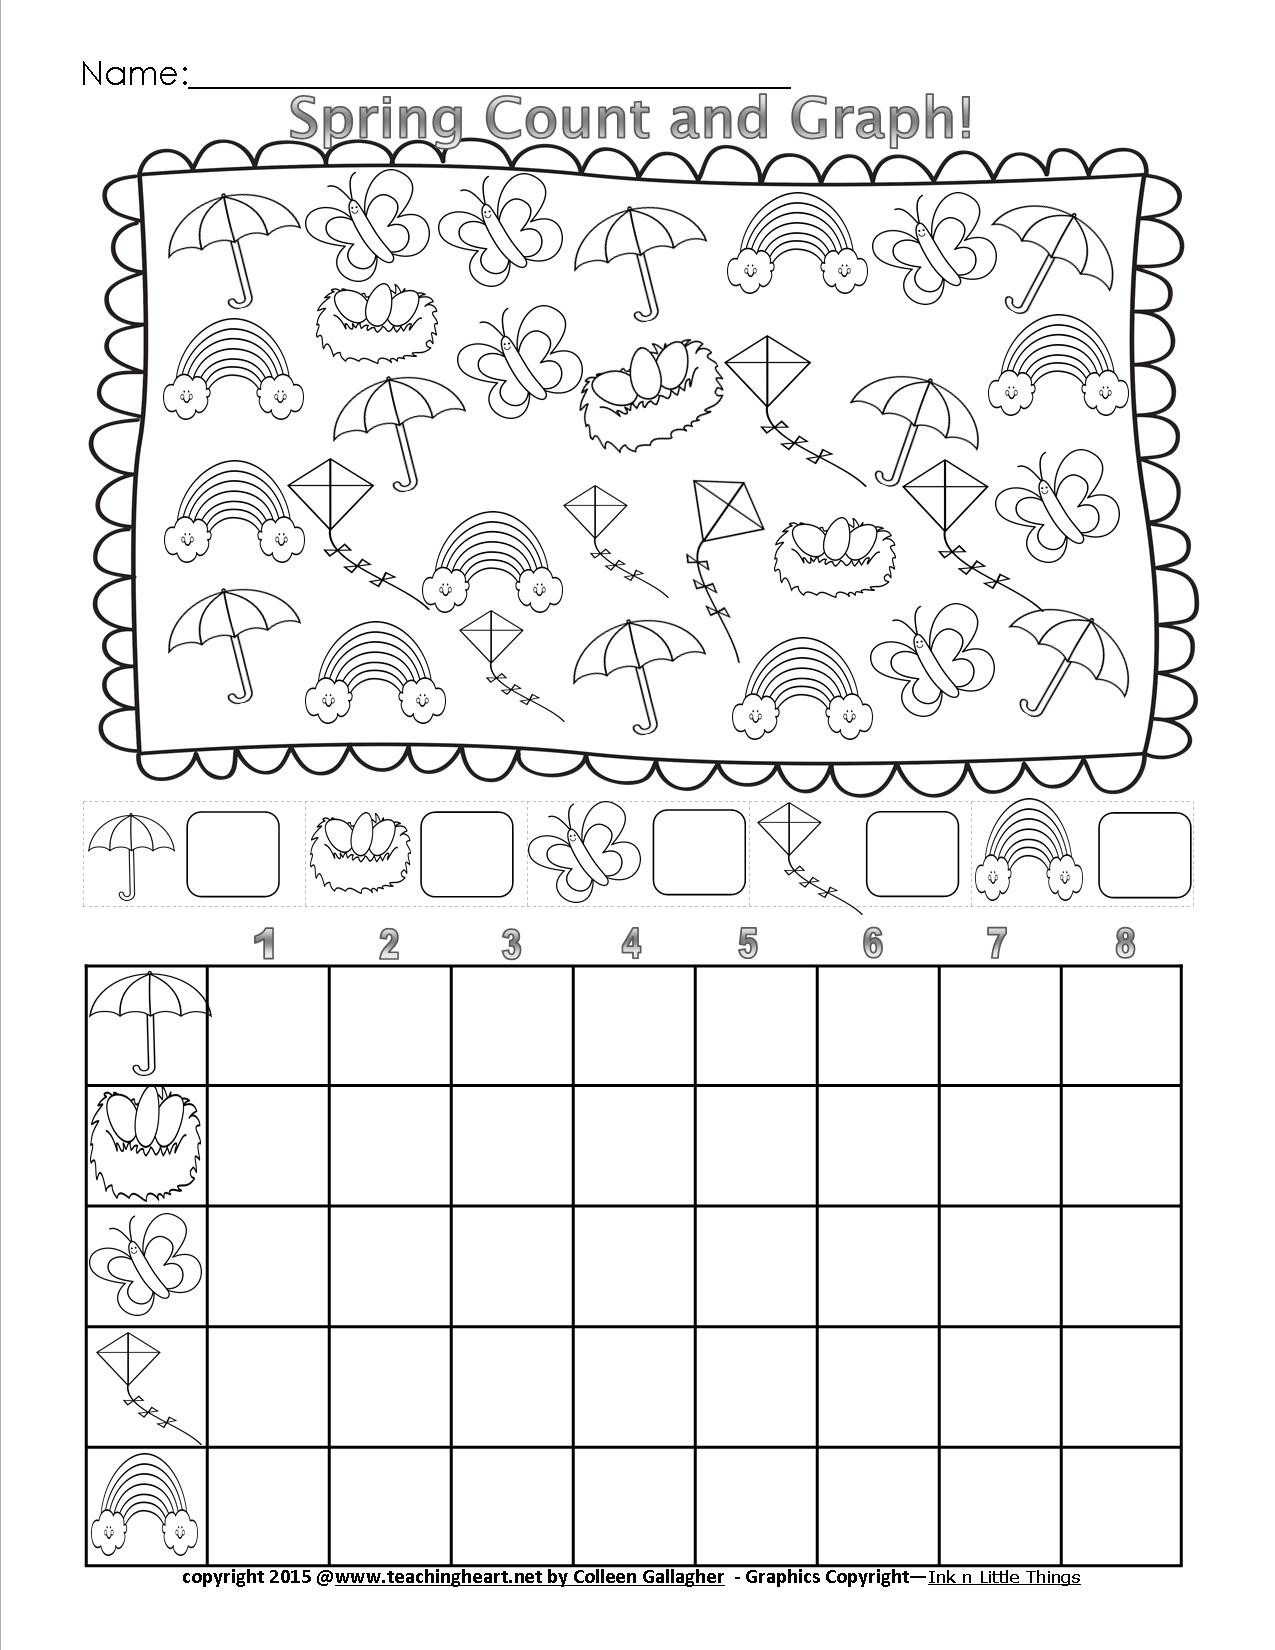 Graphing Worksheets for First Grade Spring Count and Graph Free Teaching Heart Blog Graphing